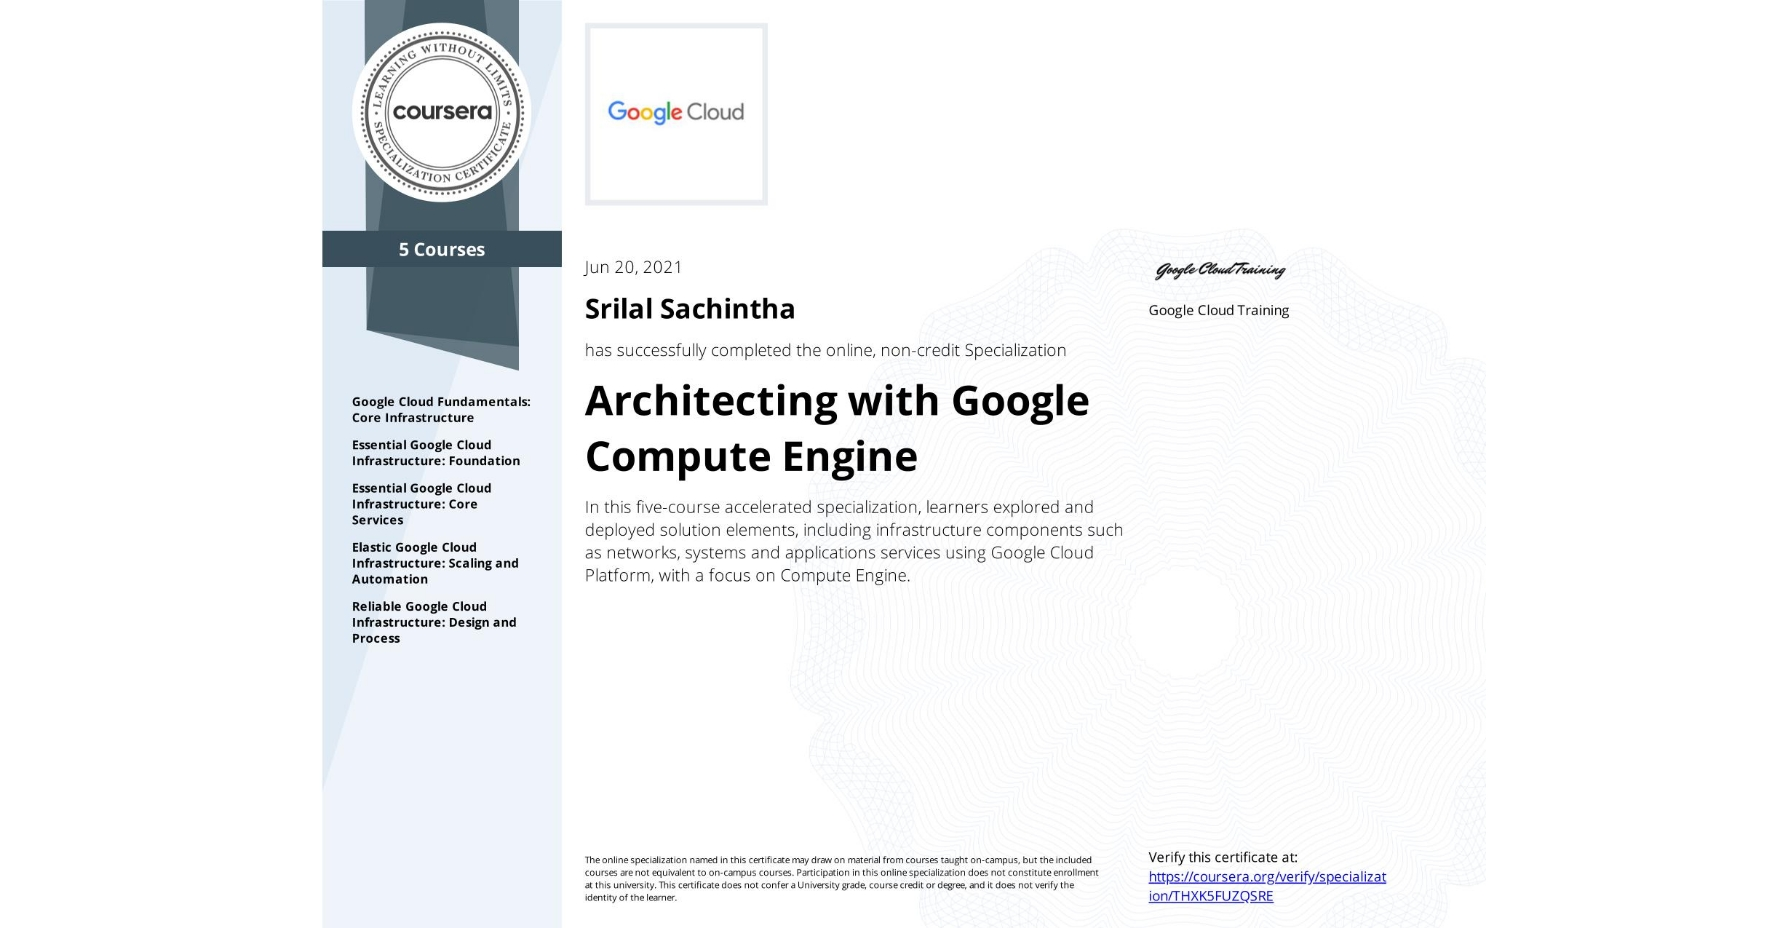 View certificate for Srilal Sachintha, Architecting with Google Compute Engine, offered through Coursera. In this five-course accelerated specialization, learners explored and deployed solution elements, including infrastructure components such as networks, systems and applications services using Google Cloud Platform, with a focus on Compute Engine.